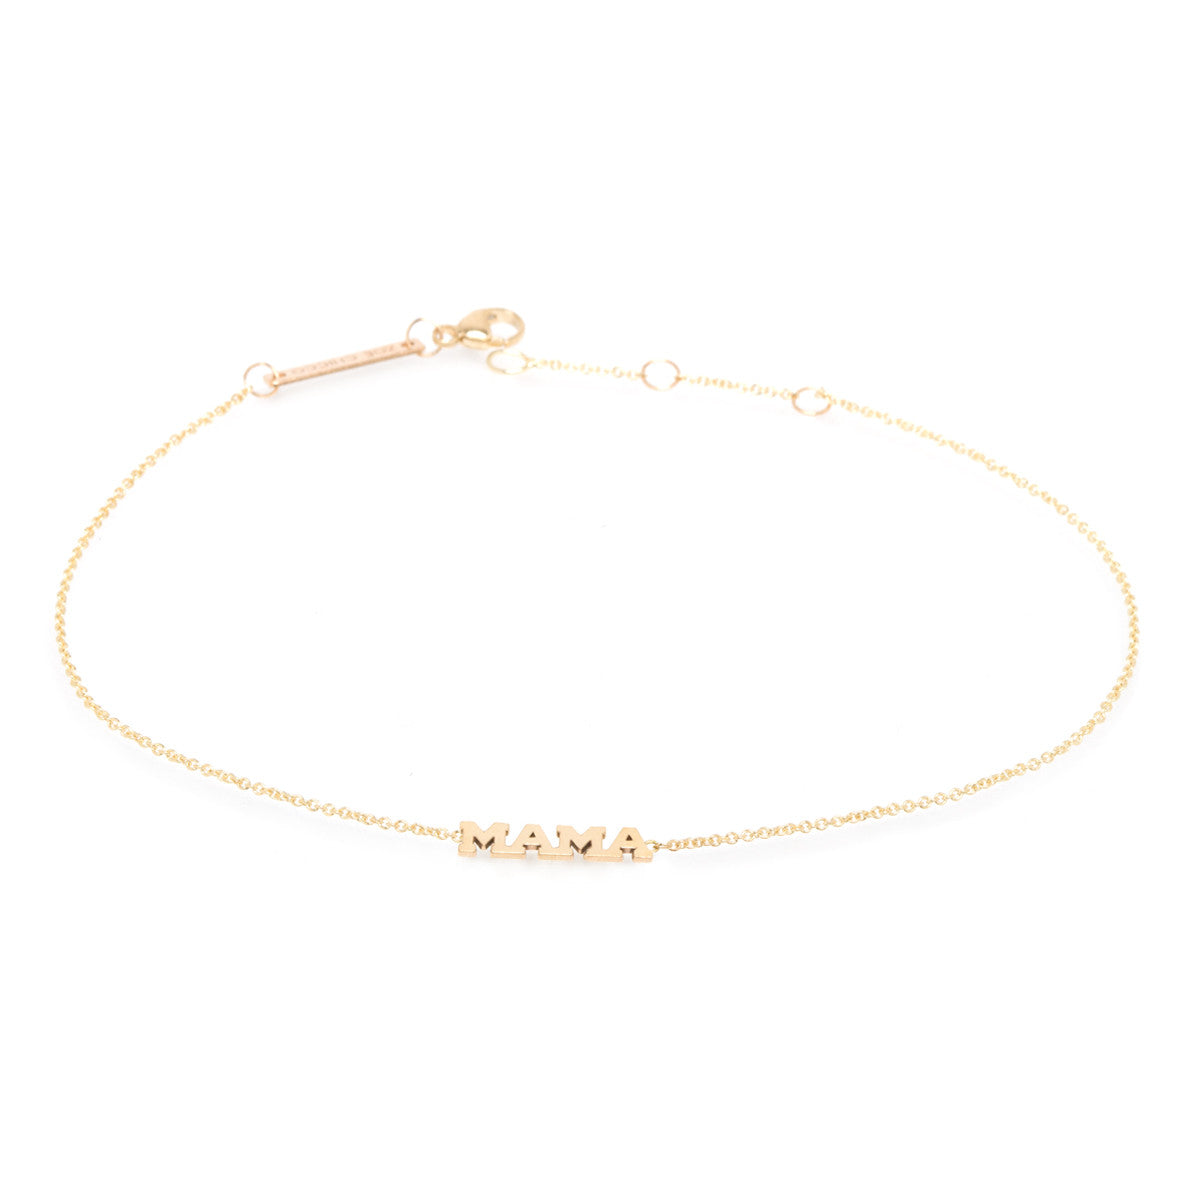 Zoë Chicco 14kt Yellow Gold Itty Bitty MAMA Anklet